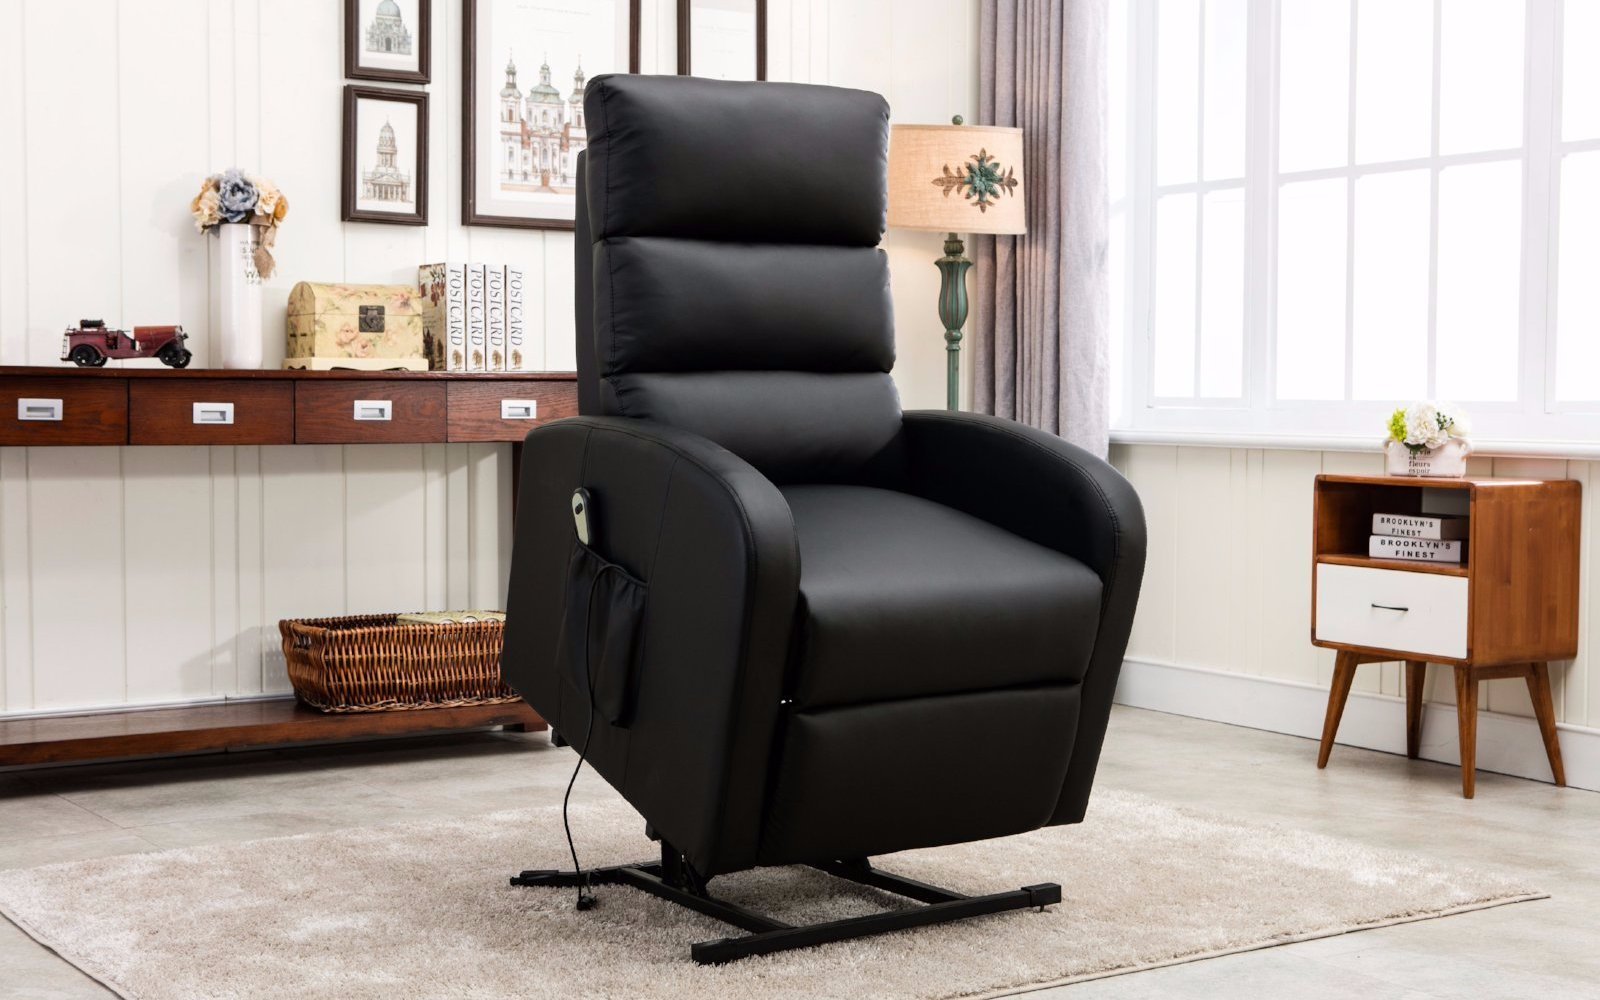 ... Lift Power Lift Recliner Fabric Chair ... & Lift Power Lift Recliner Bonded Leather Chair - Sofamania islam-shia.org